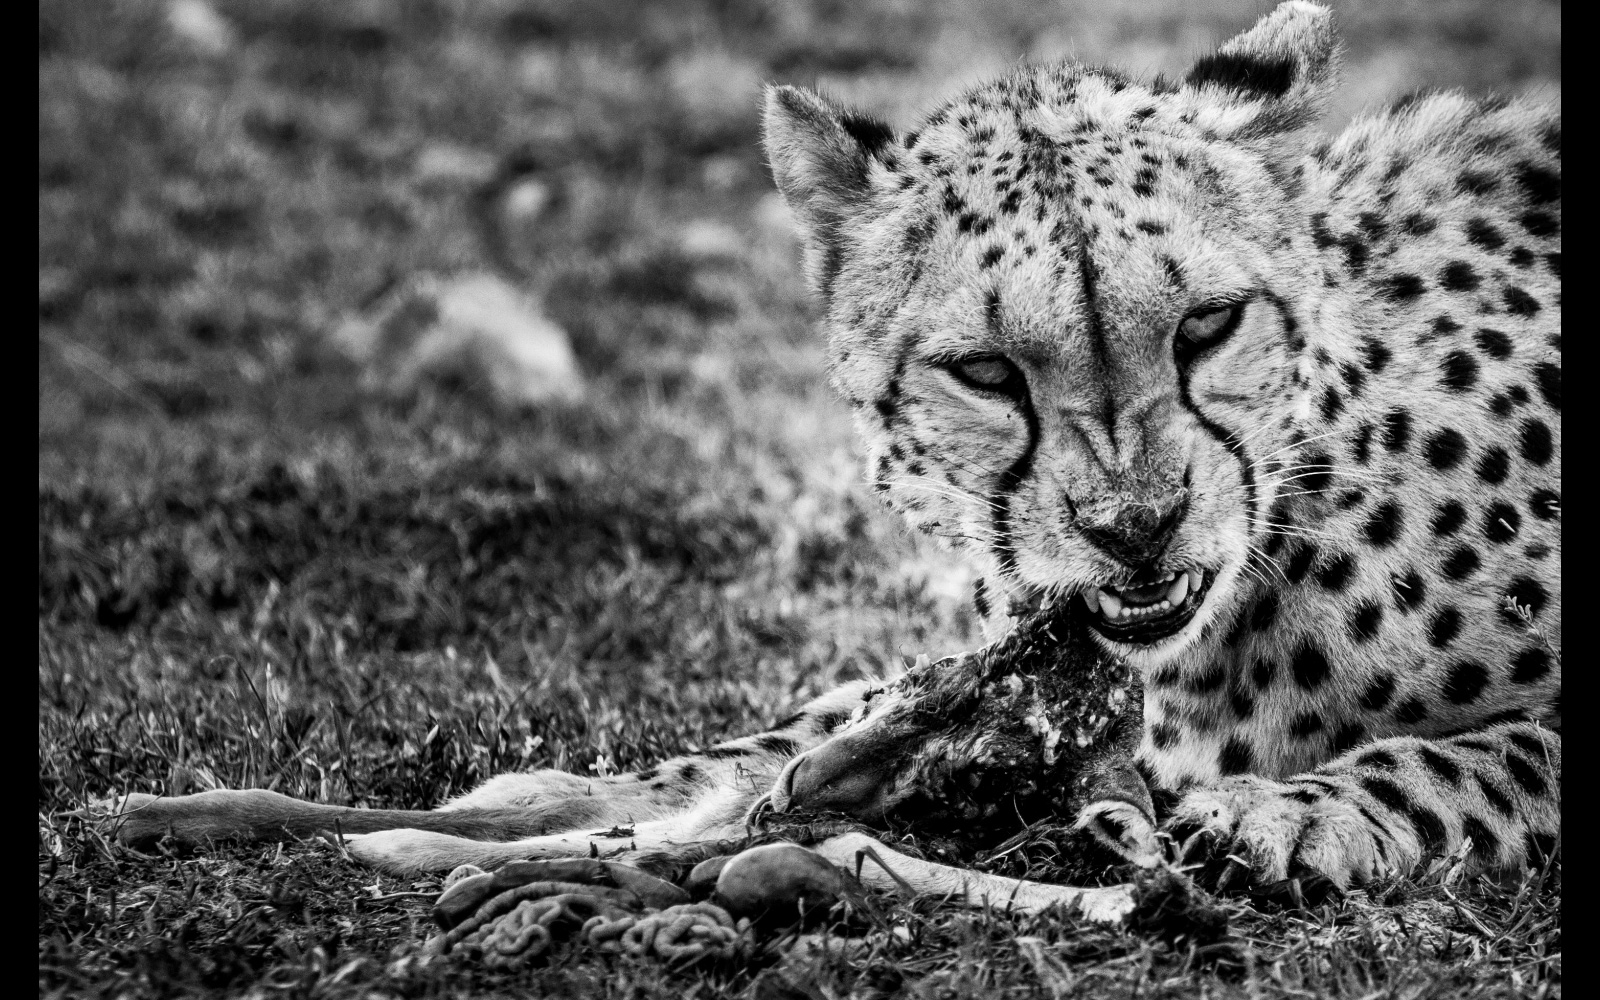 """Intensity"" – a pregnant female cheetah with her kill in Maasai Mara National Reserve, Kenya © Fiona Noyes"